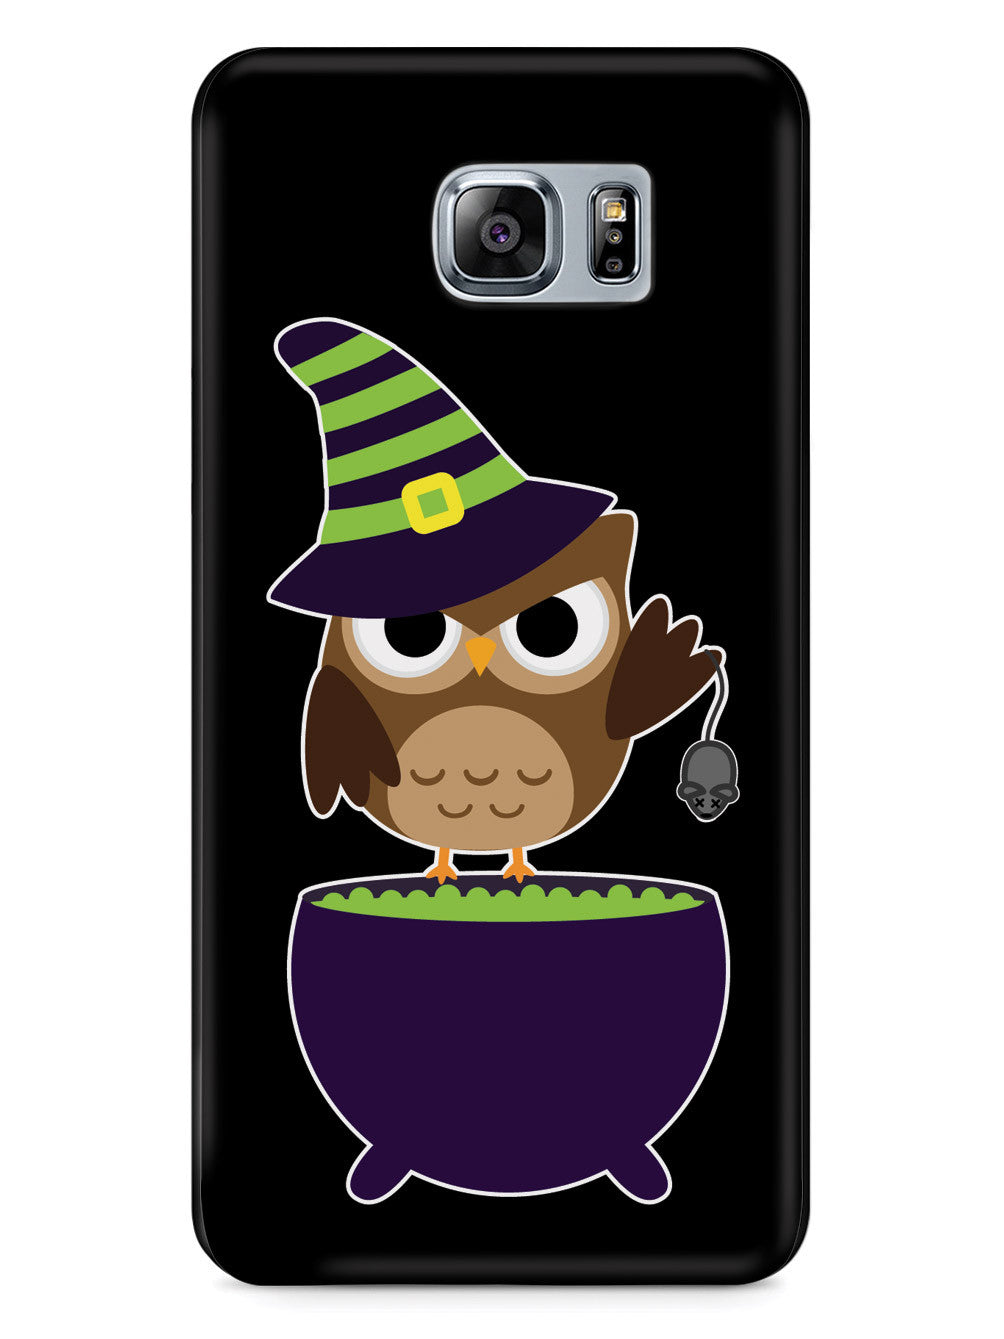 Witch Owl - Black Case